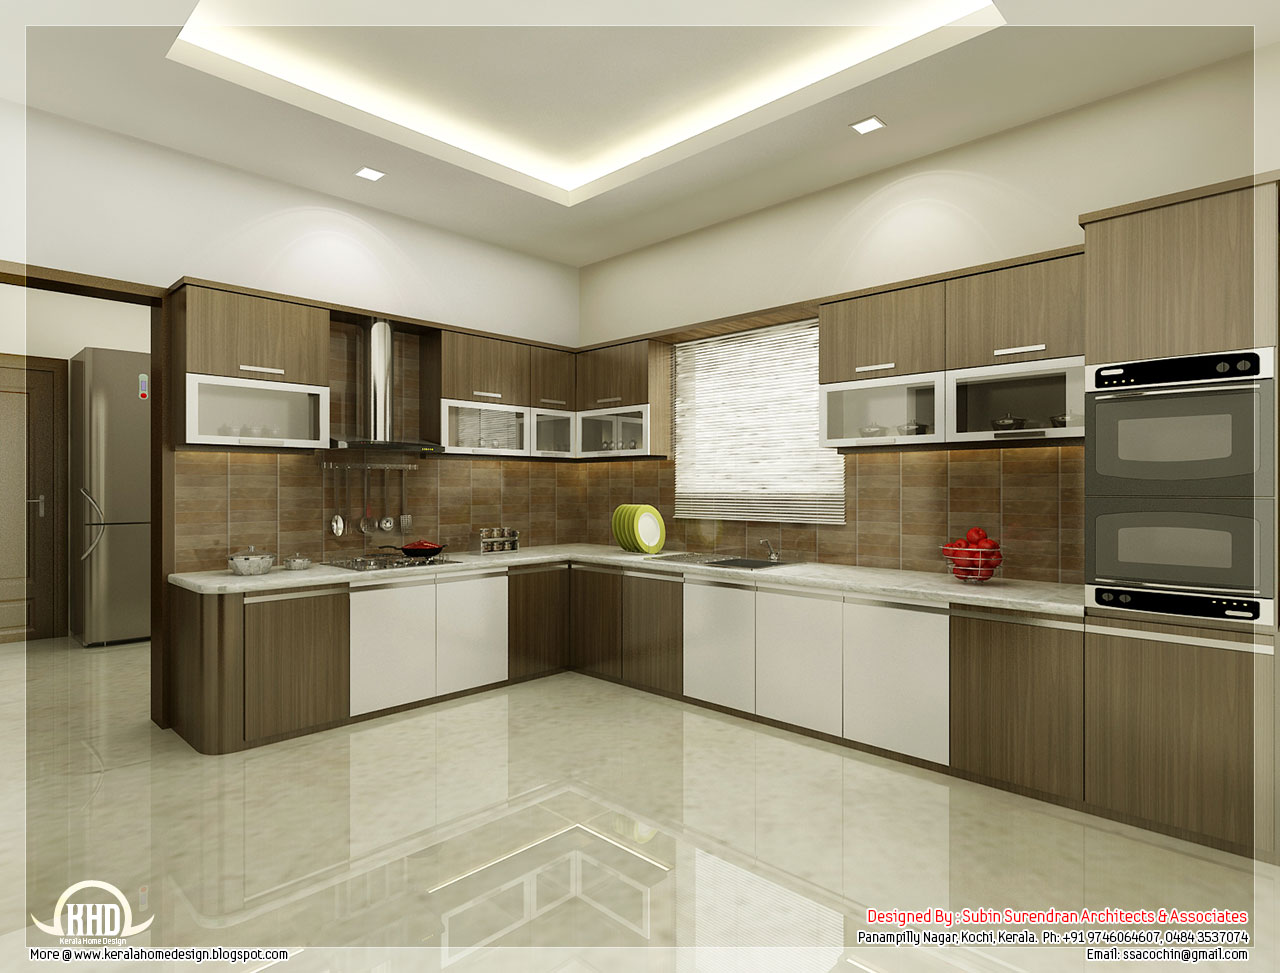 Marvelous Dining And Kitchen Interior Designs By Subin Surendran Architects